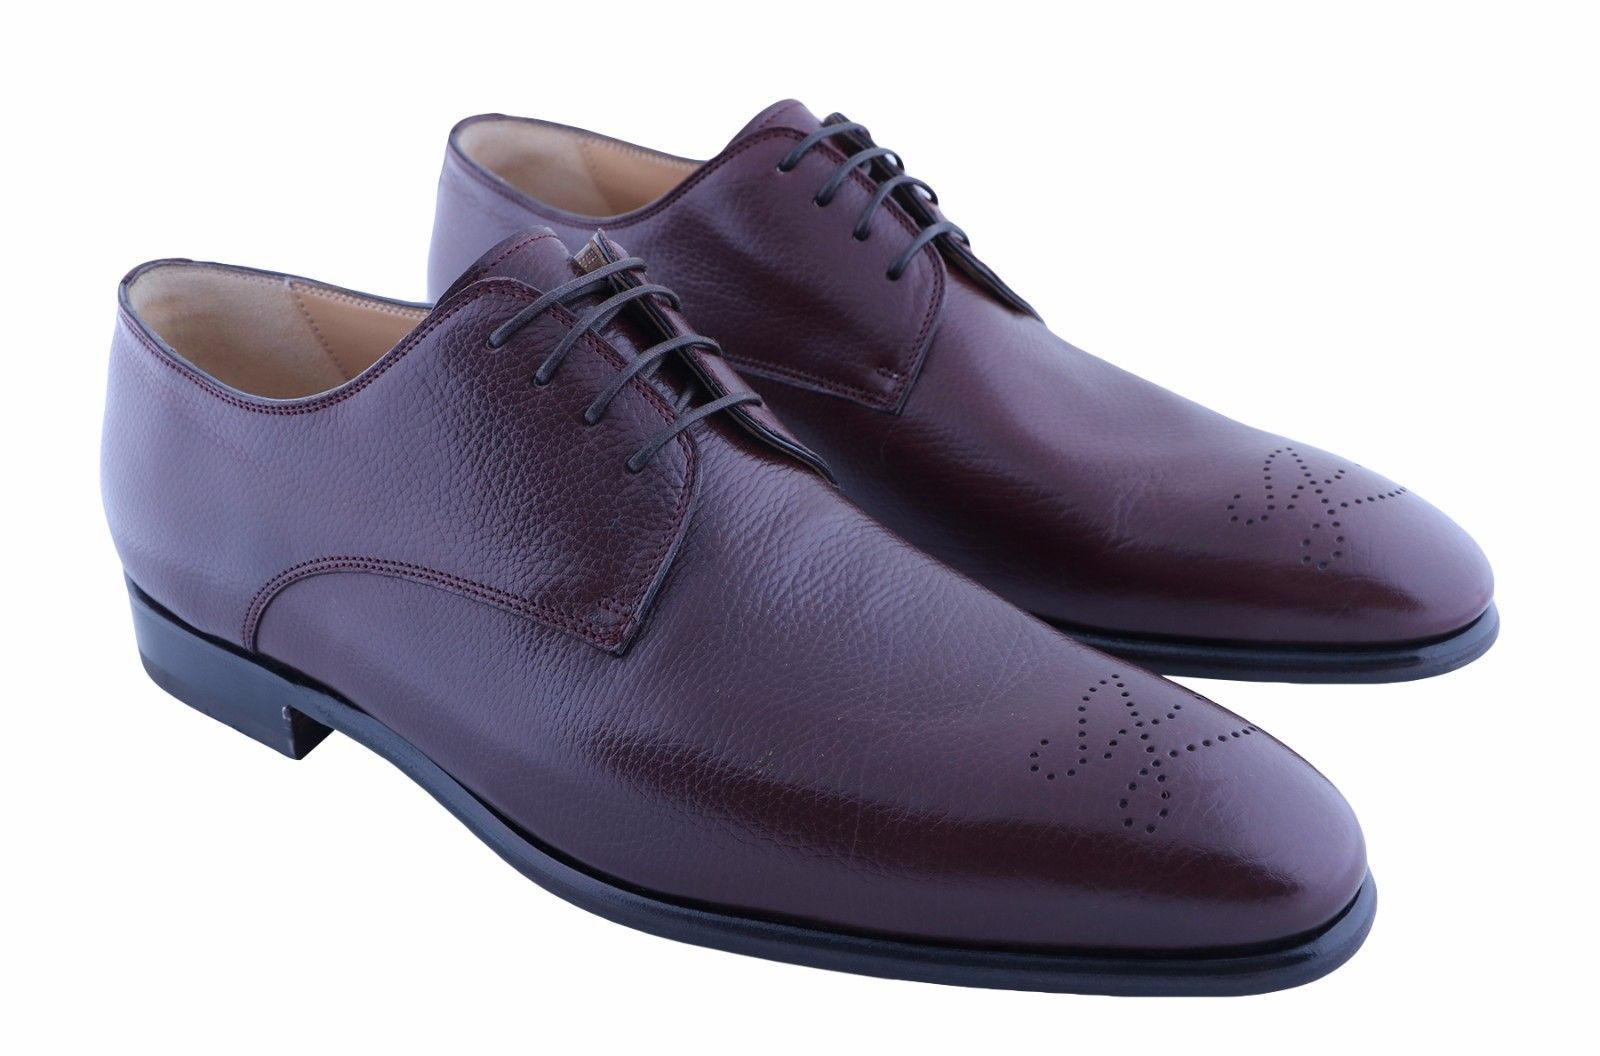 Zilli Men s Burgundy Oxford Leather Shoes and 50 similar items. S l1600 05609c18d